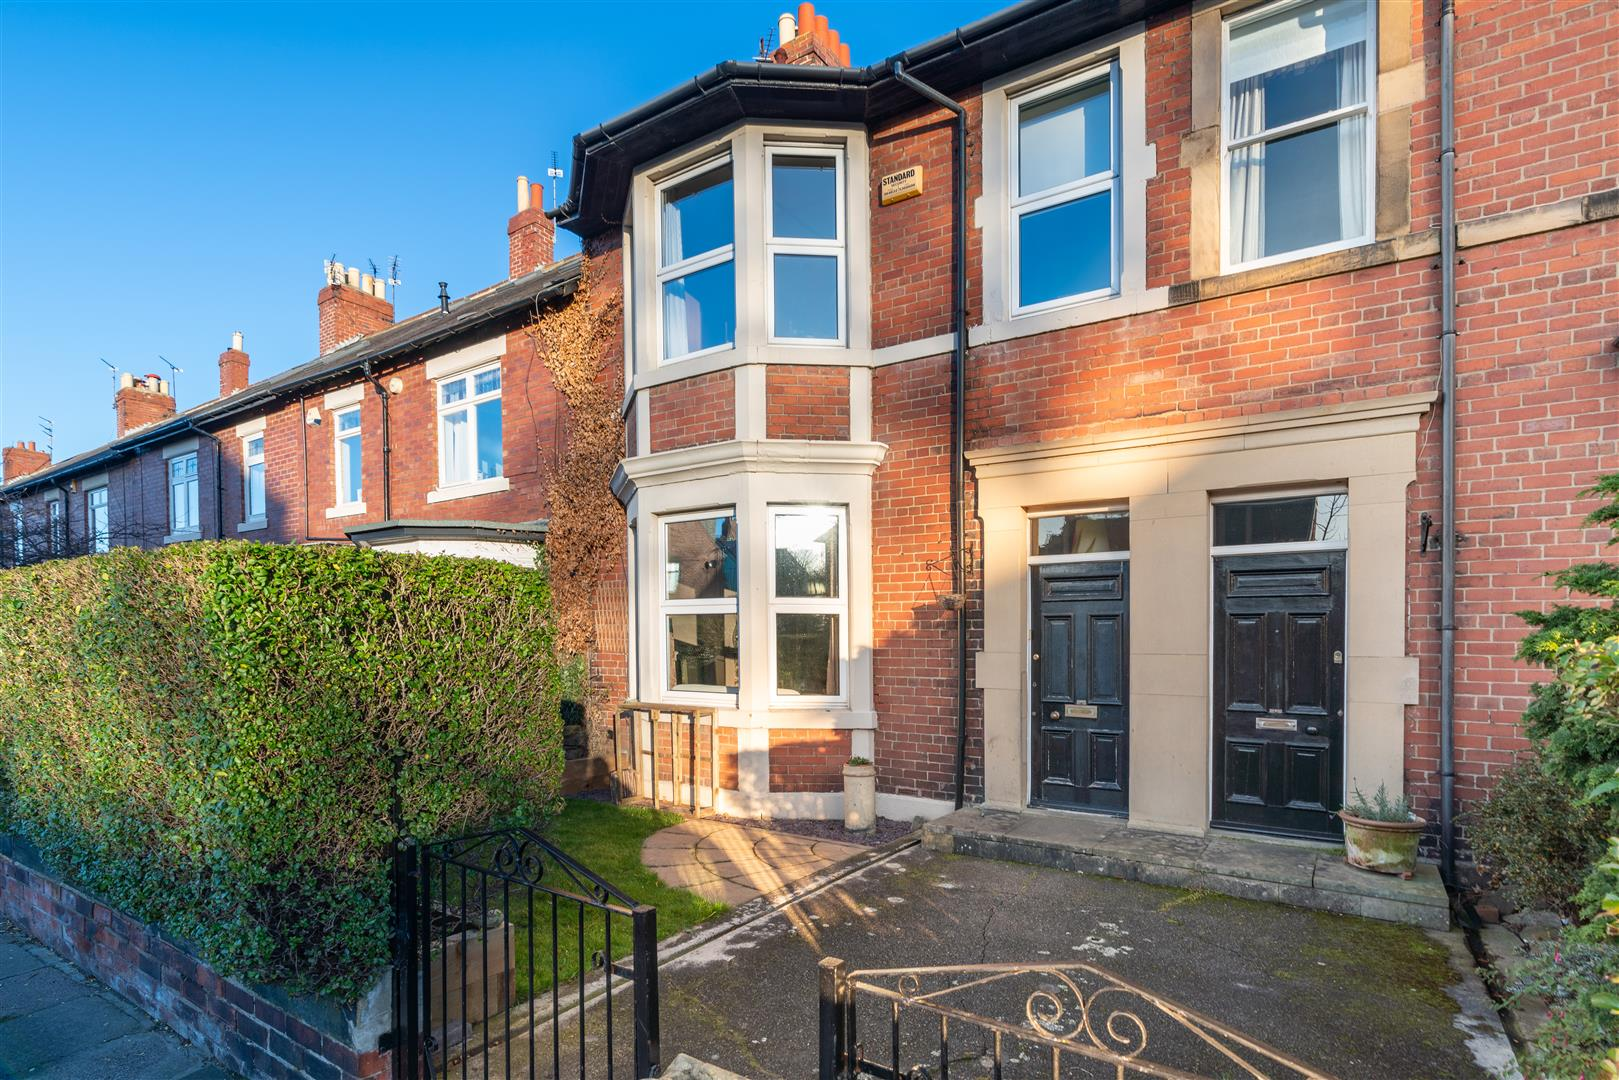 5 bed terraced house for sale in Gosforth, NE3 1UB - Property Image 1